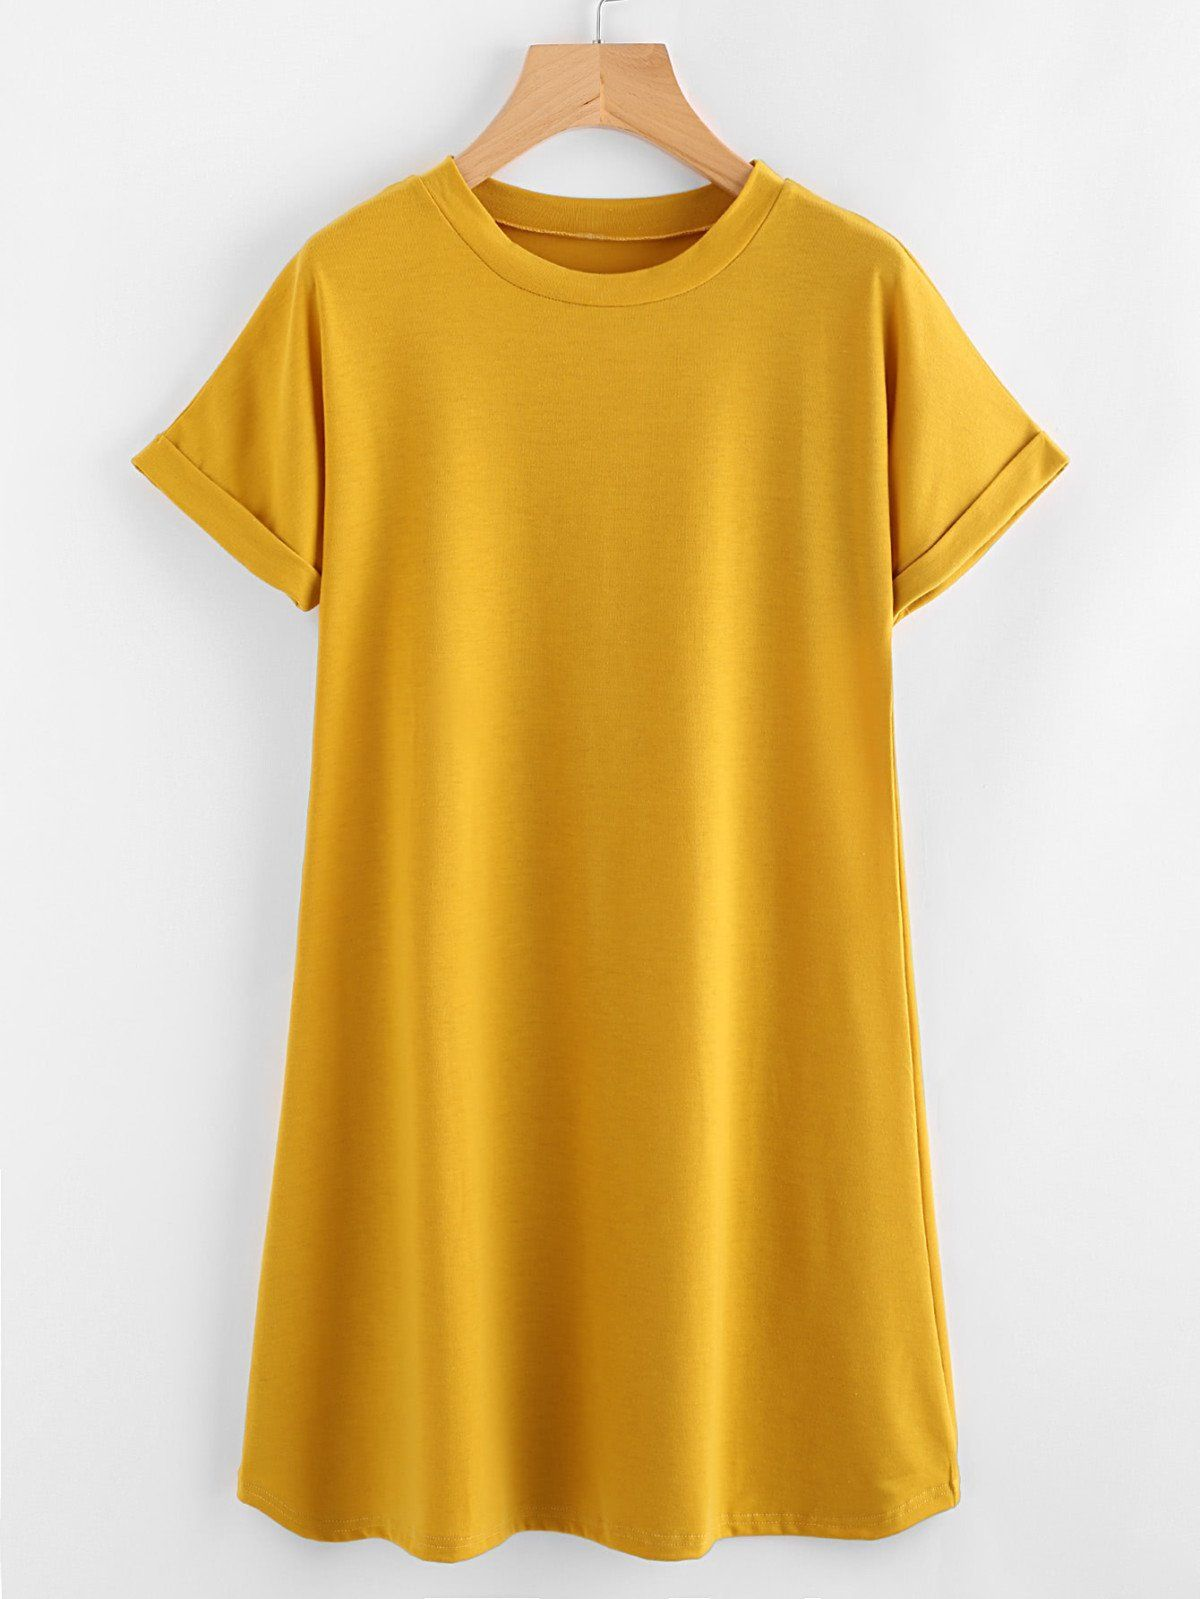 Rolled sleeve basic tee dress the best deal ever contest